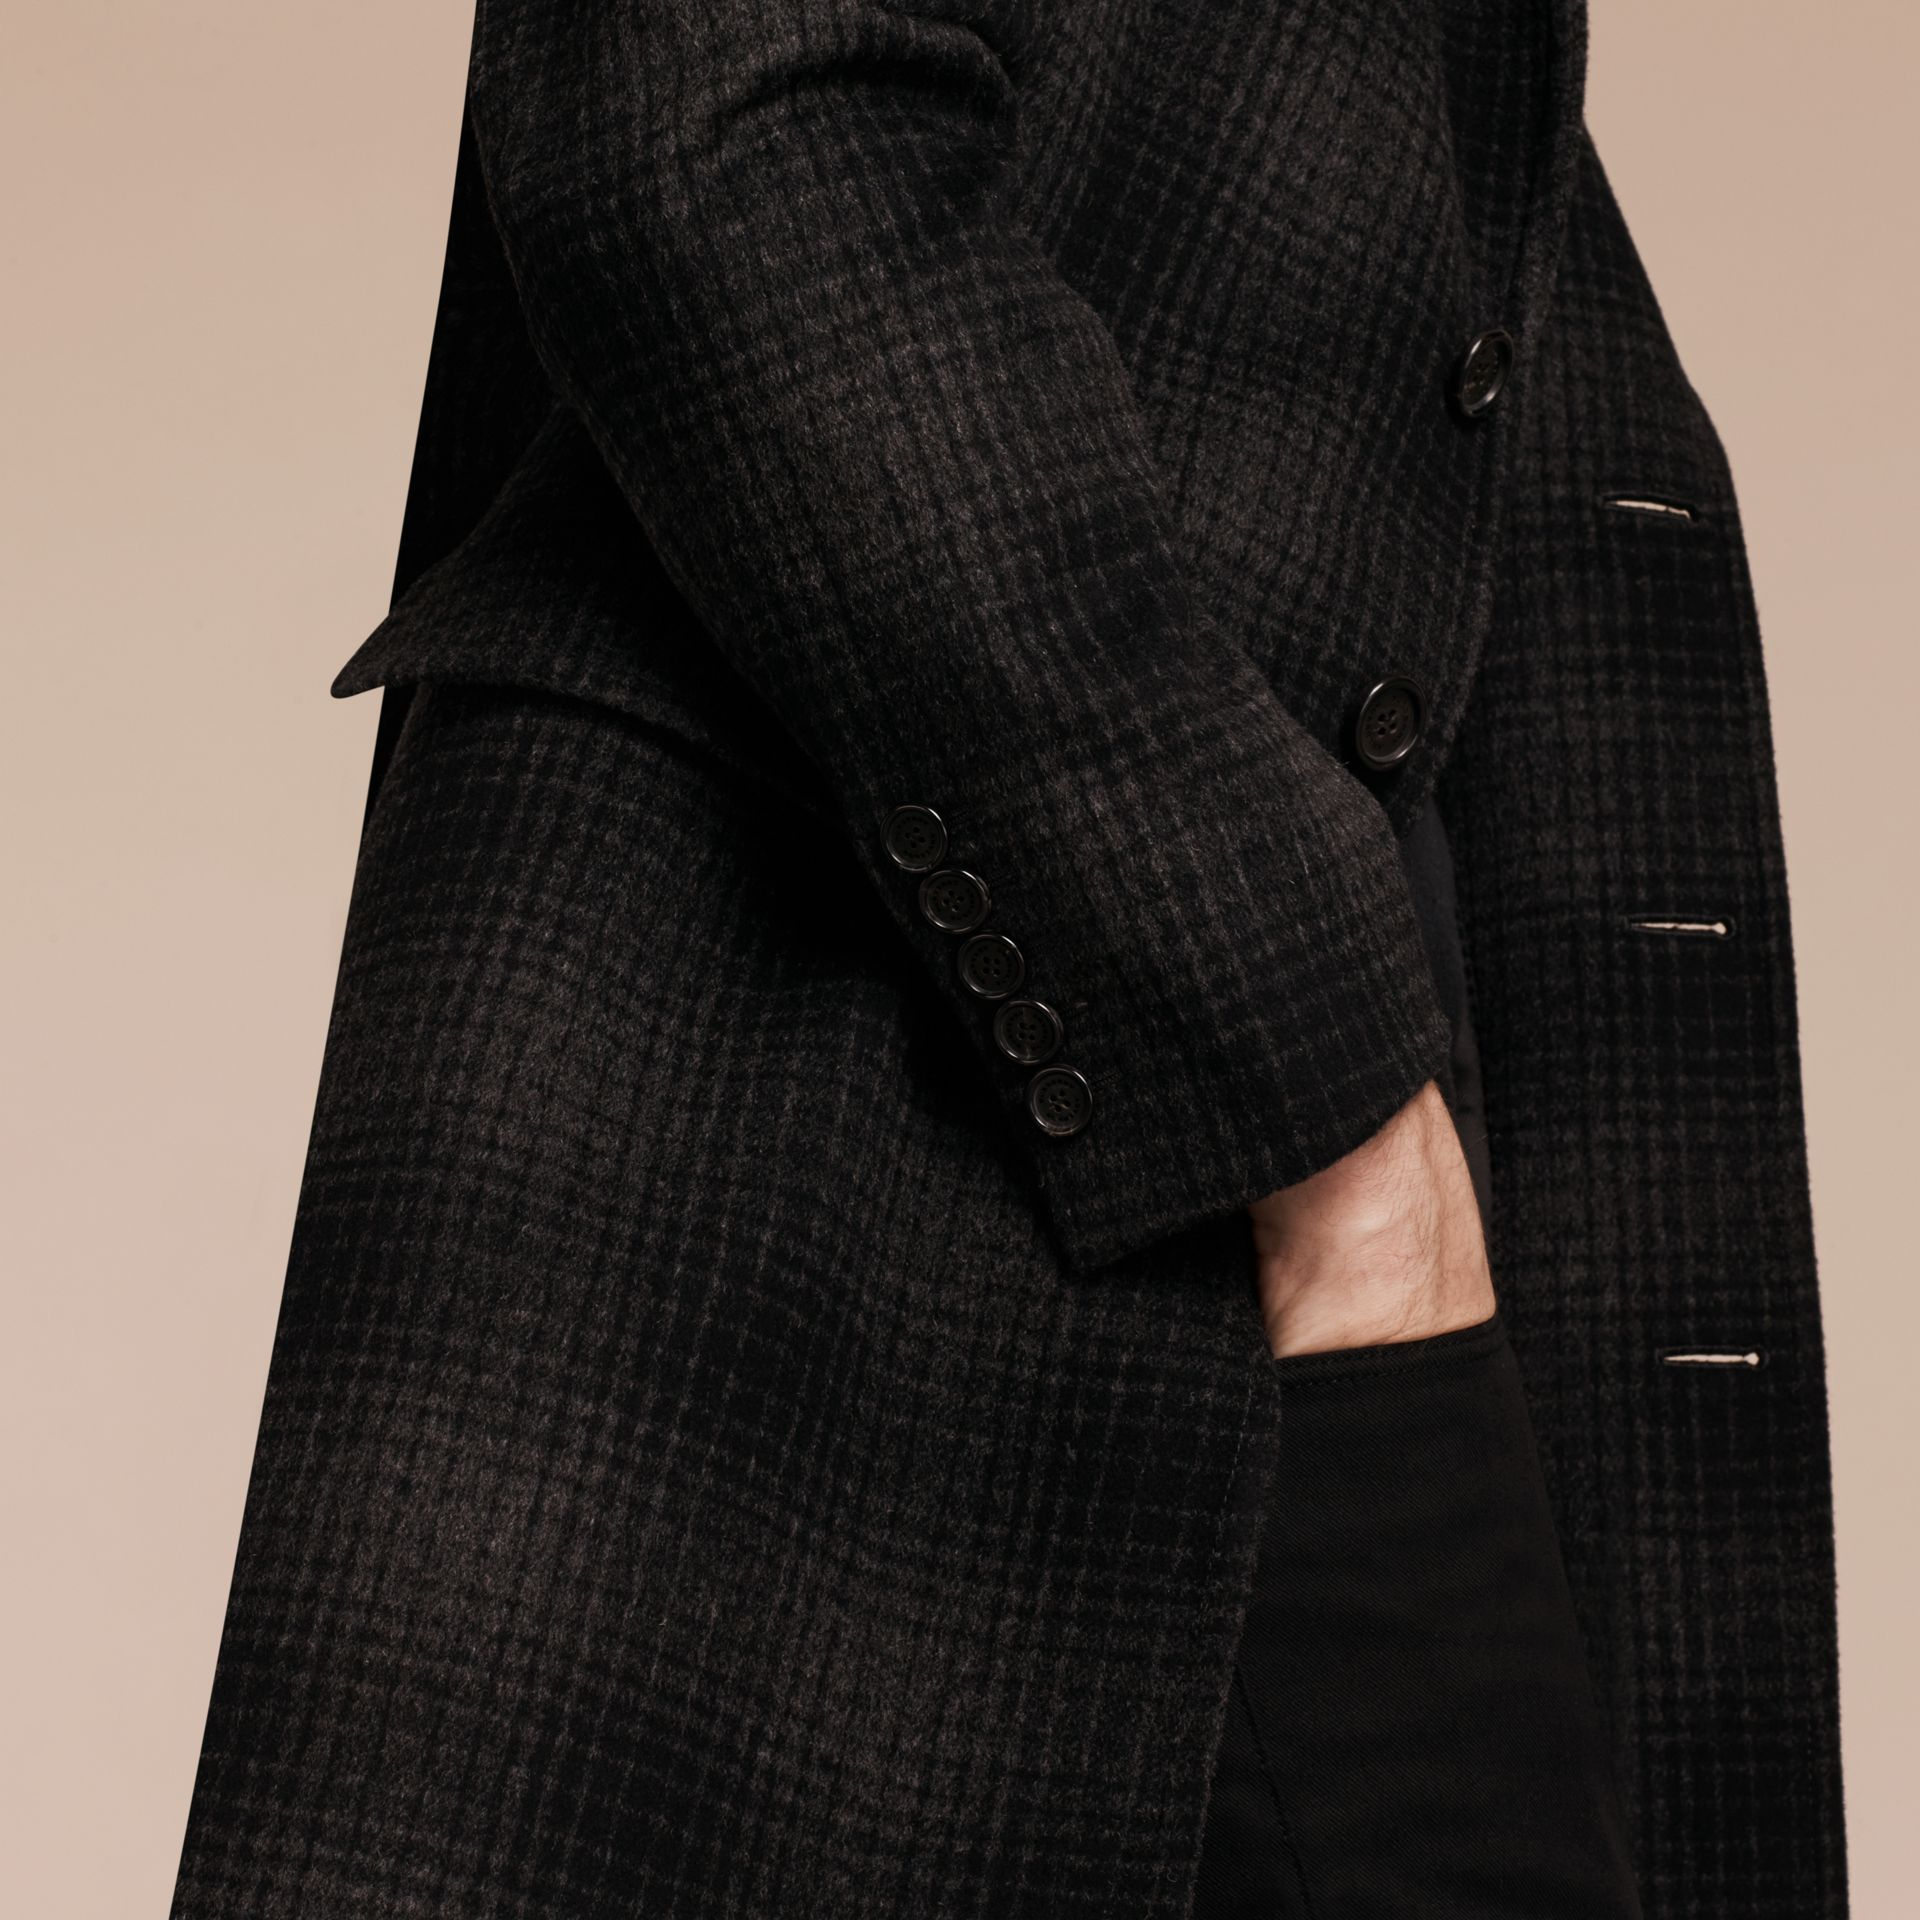 Charcoal melange Tailored Check Wool Cashmere Coat - gallery image 5